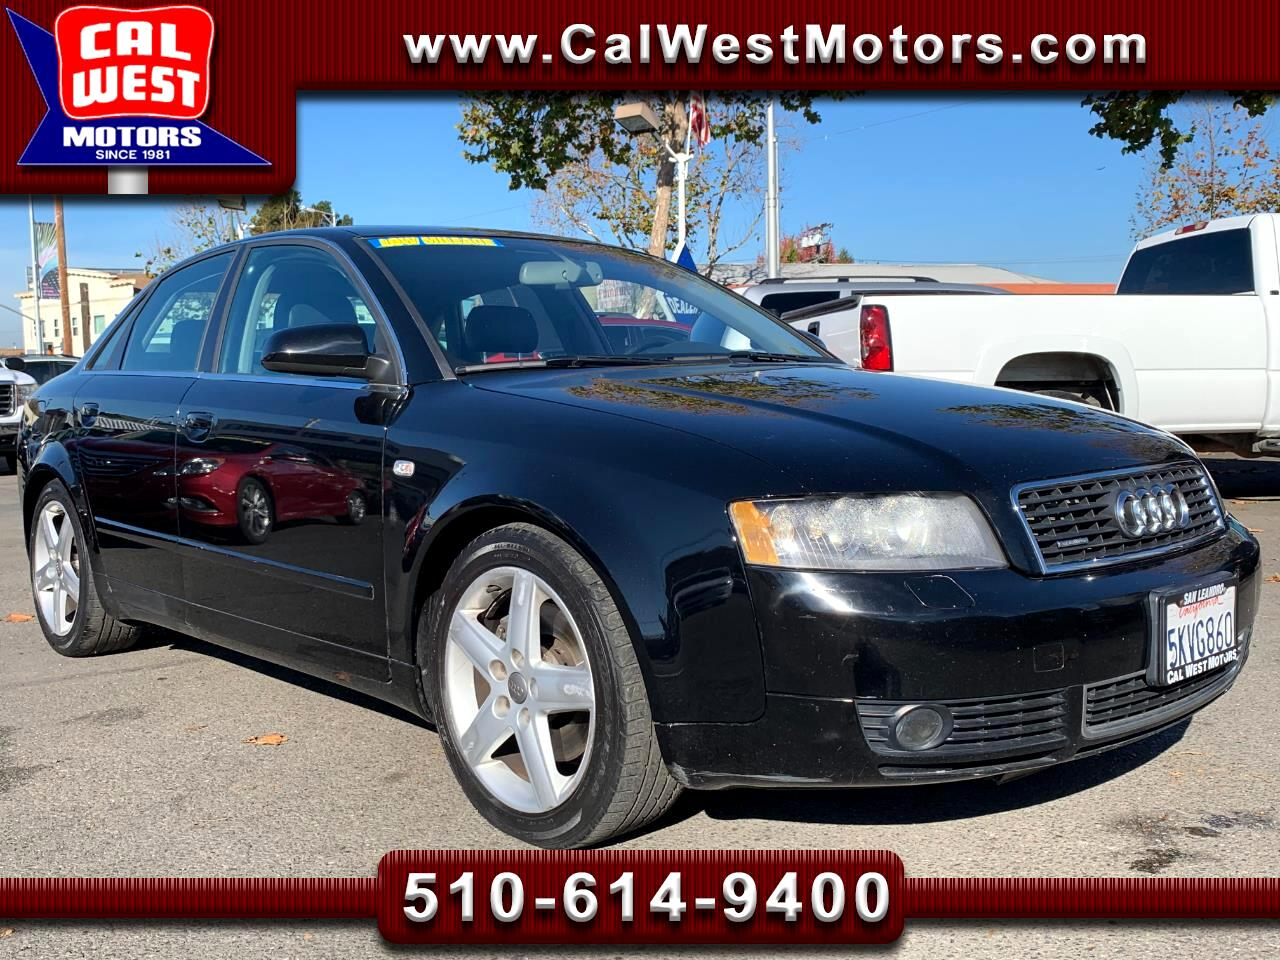 2005 Audi A4 Quattro AWD 3.0L BOSE LoMiles VeryClean ExMtnceHis